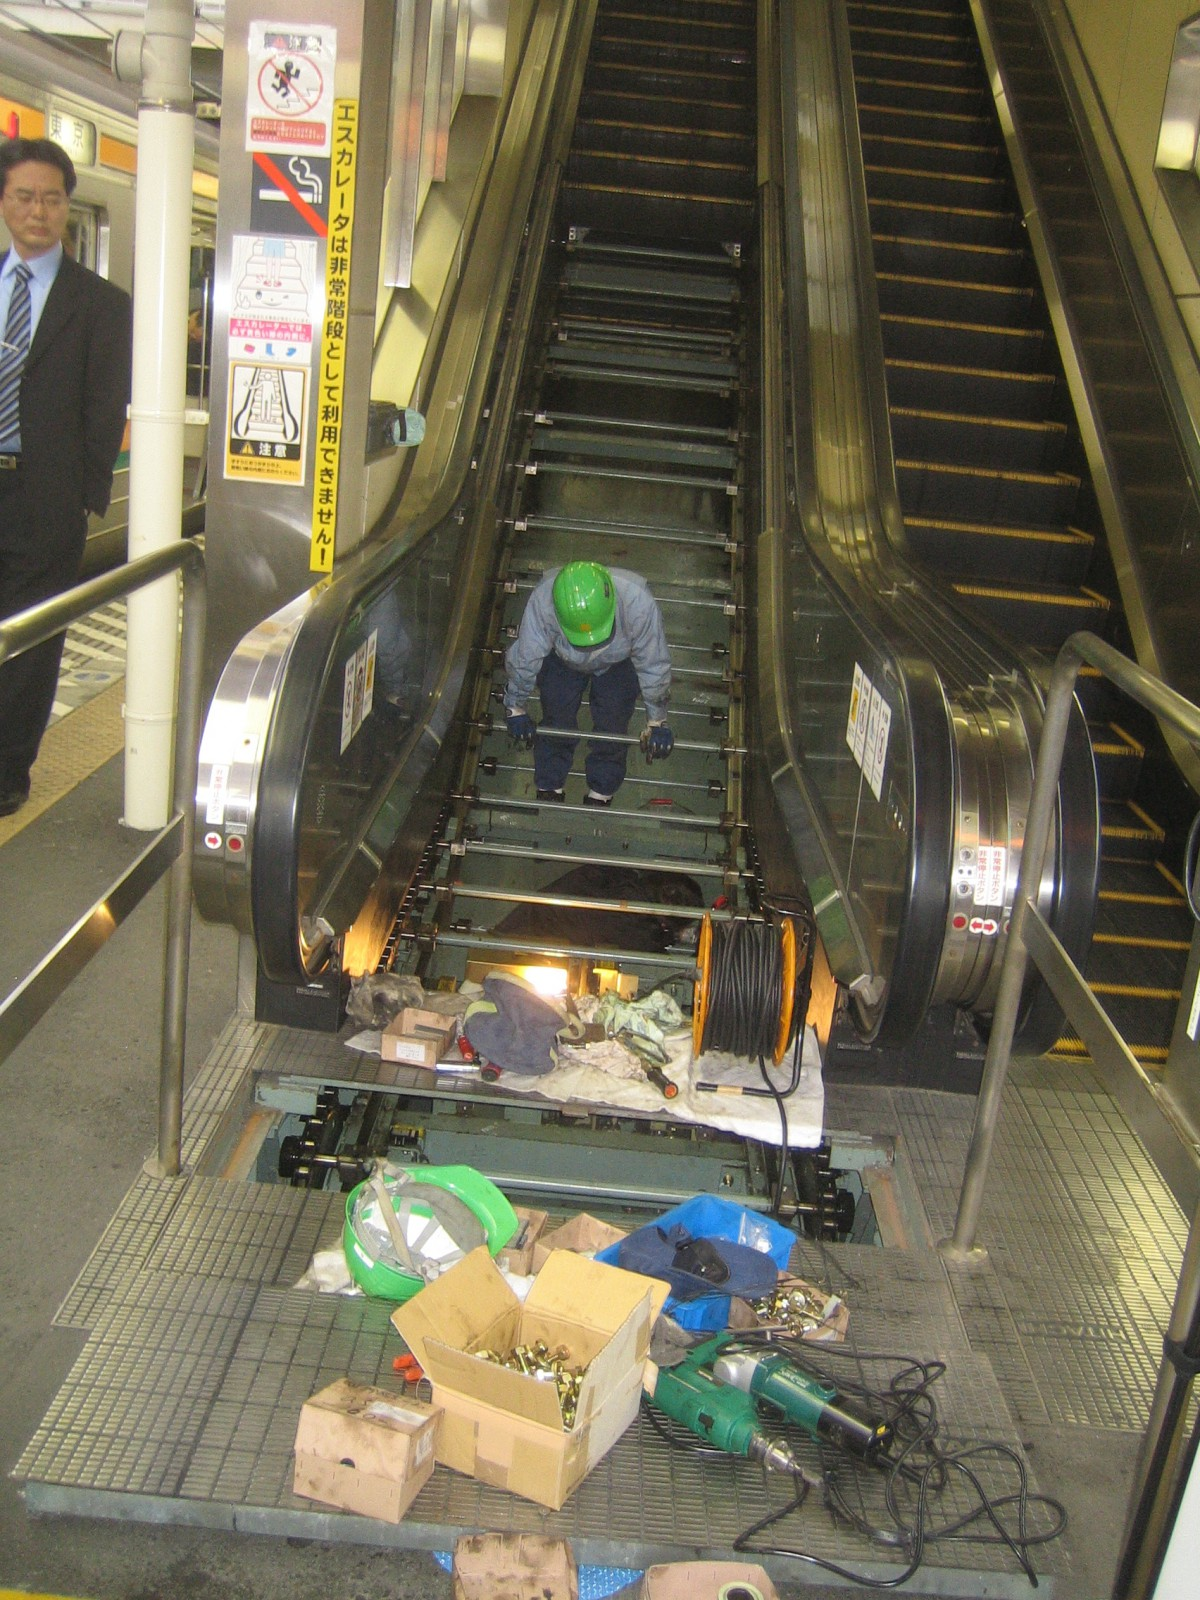 Metro escalator repairs are unlikely to work part 1 We still dont know why theyre breaking